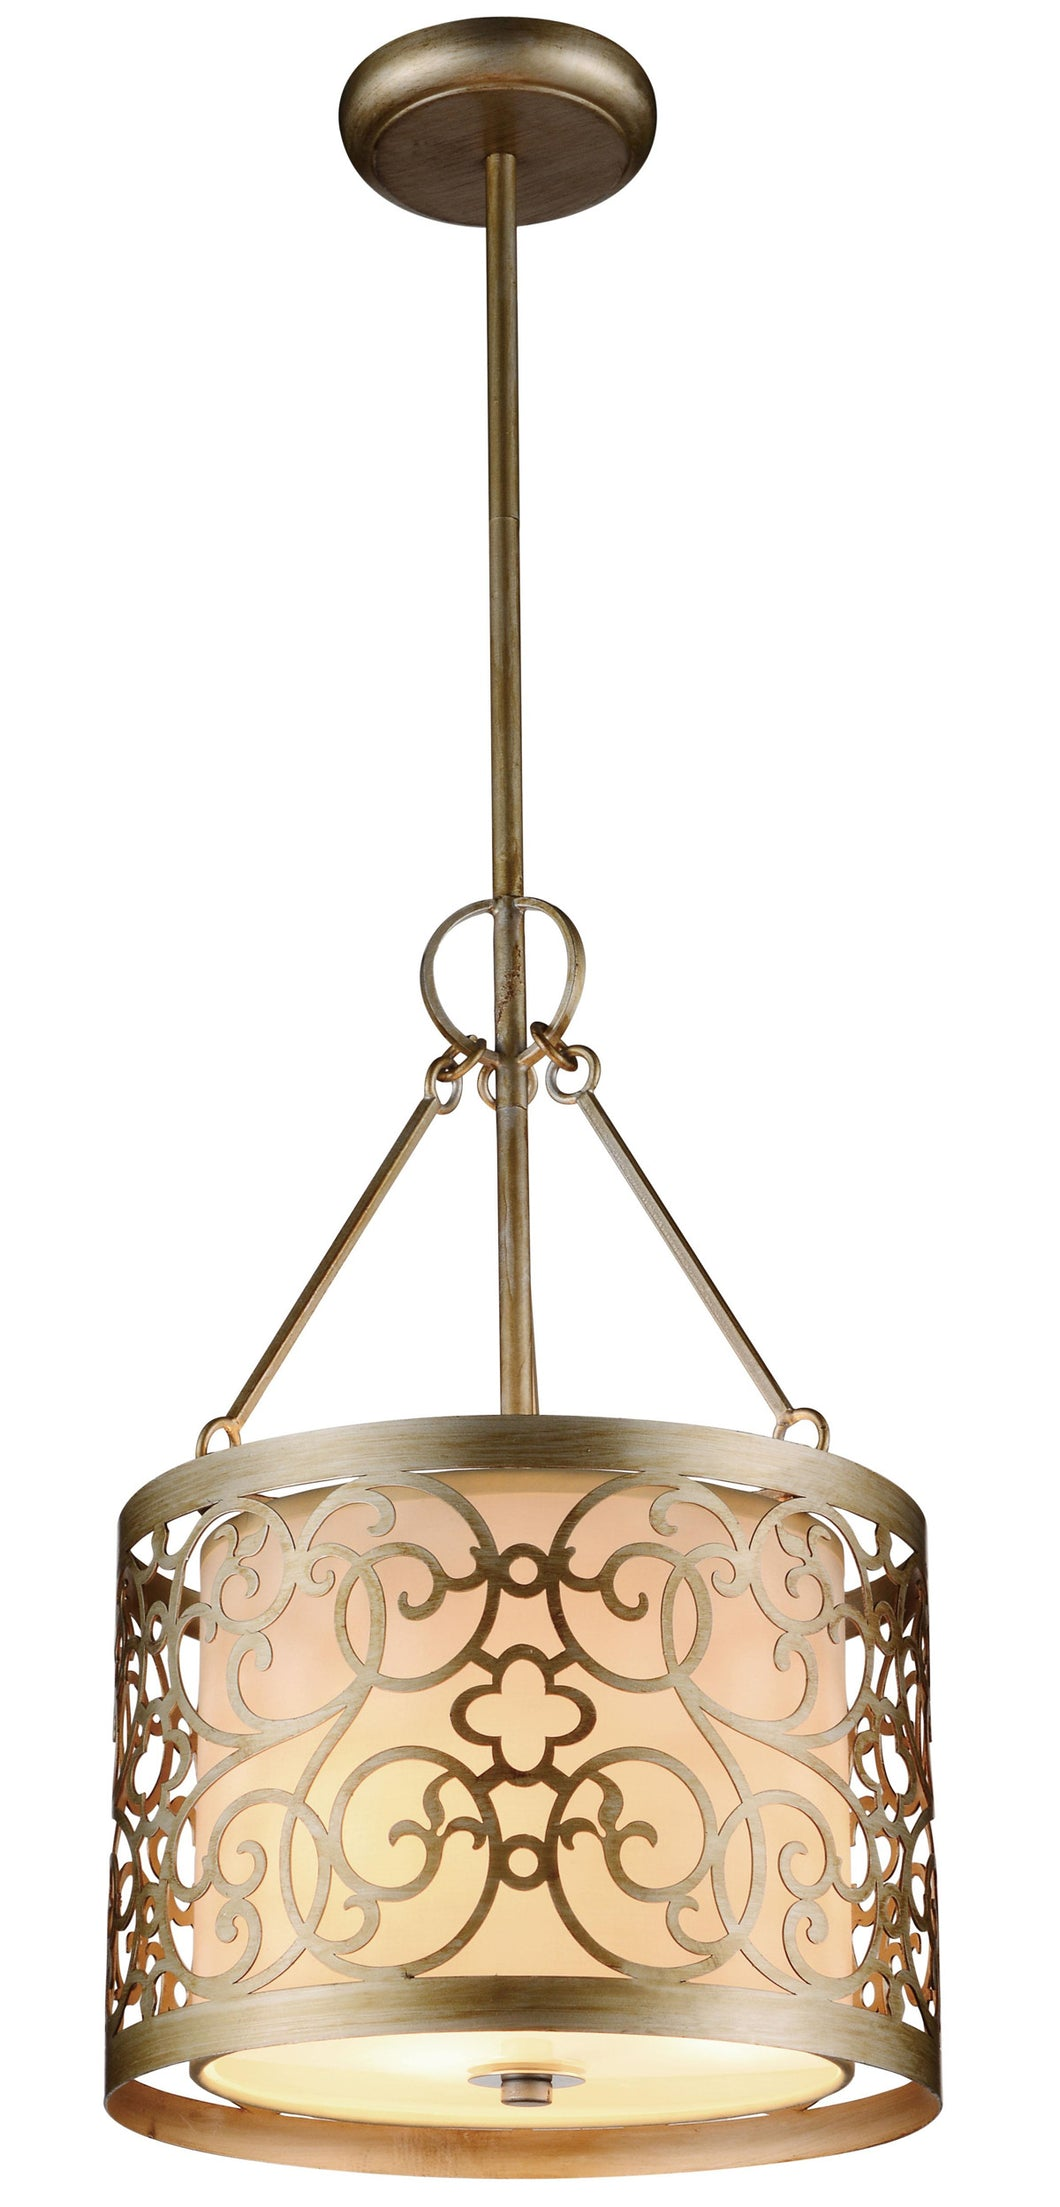 3 Light Drum Shade Mini Pendant with Rubbed Silver finish